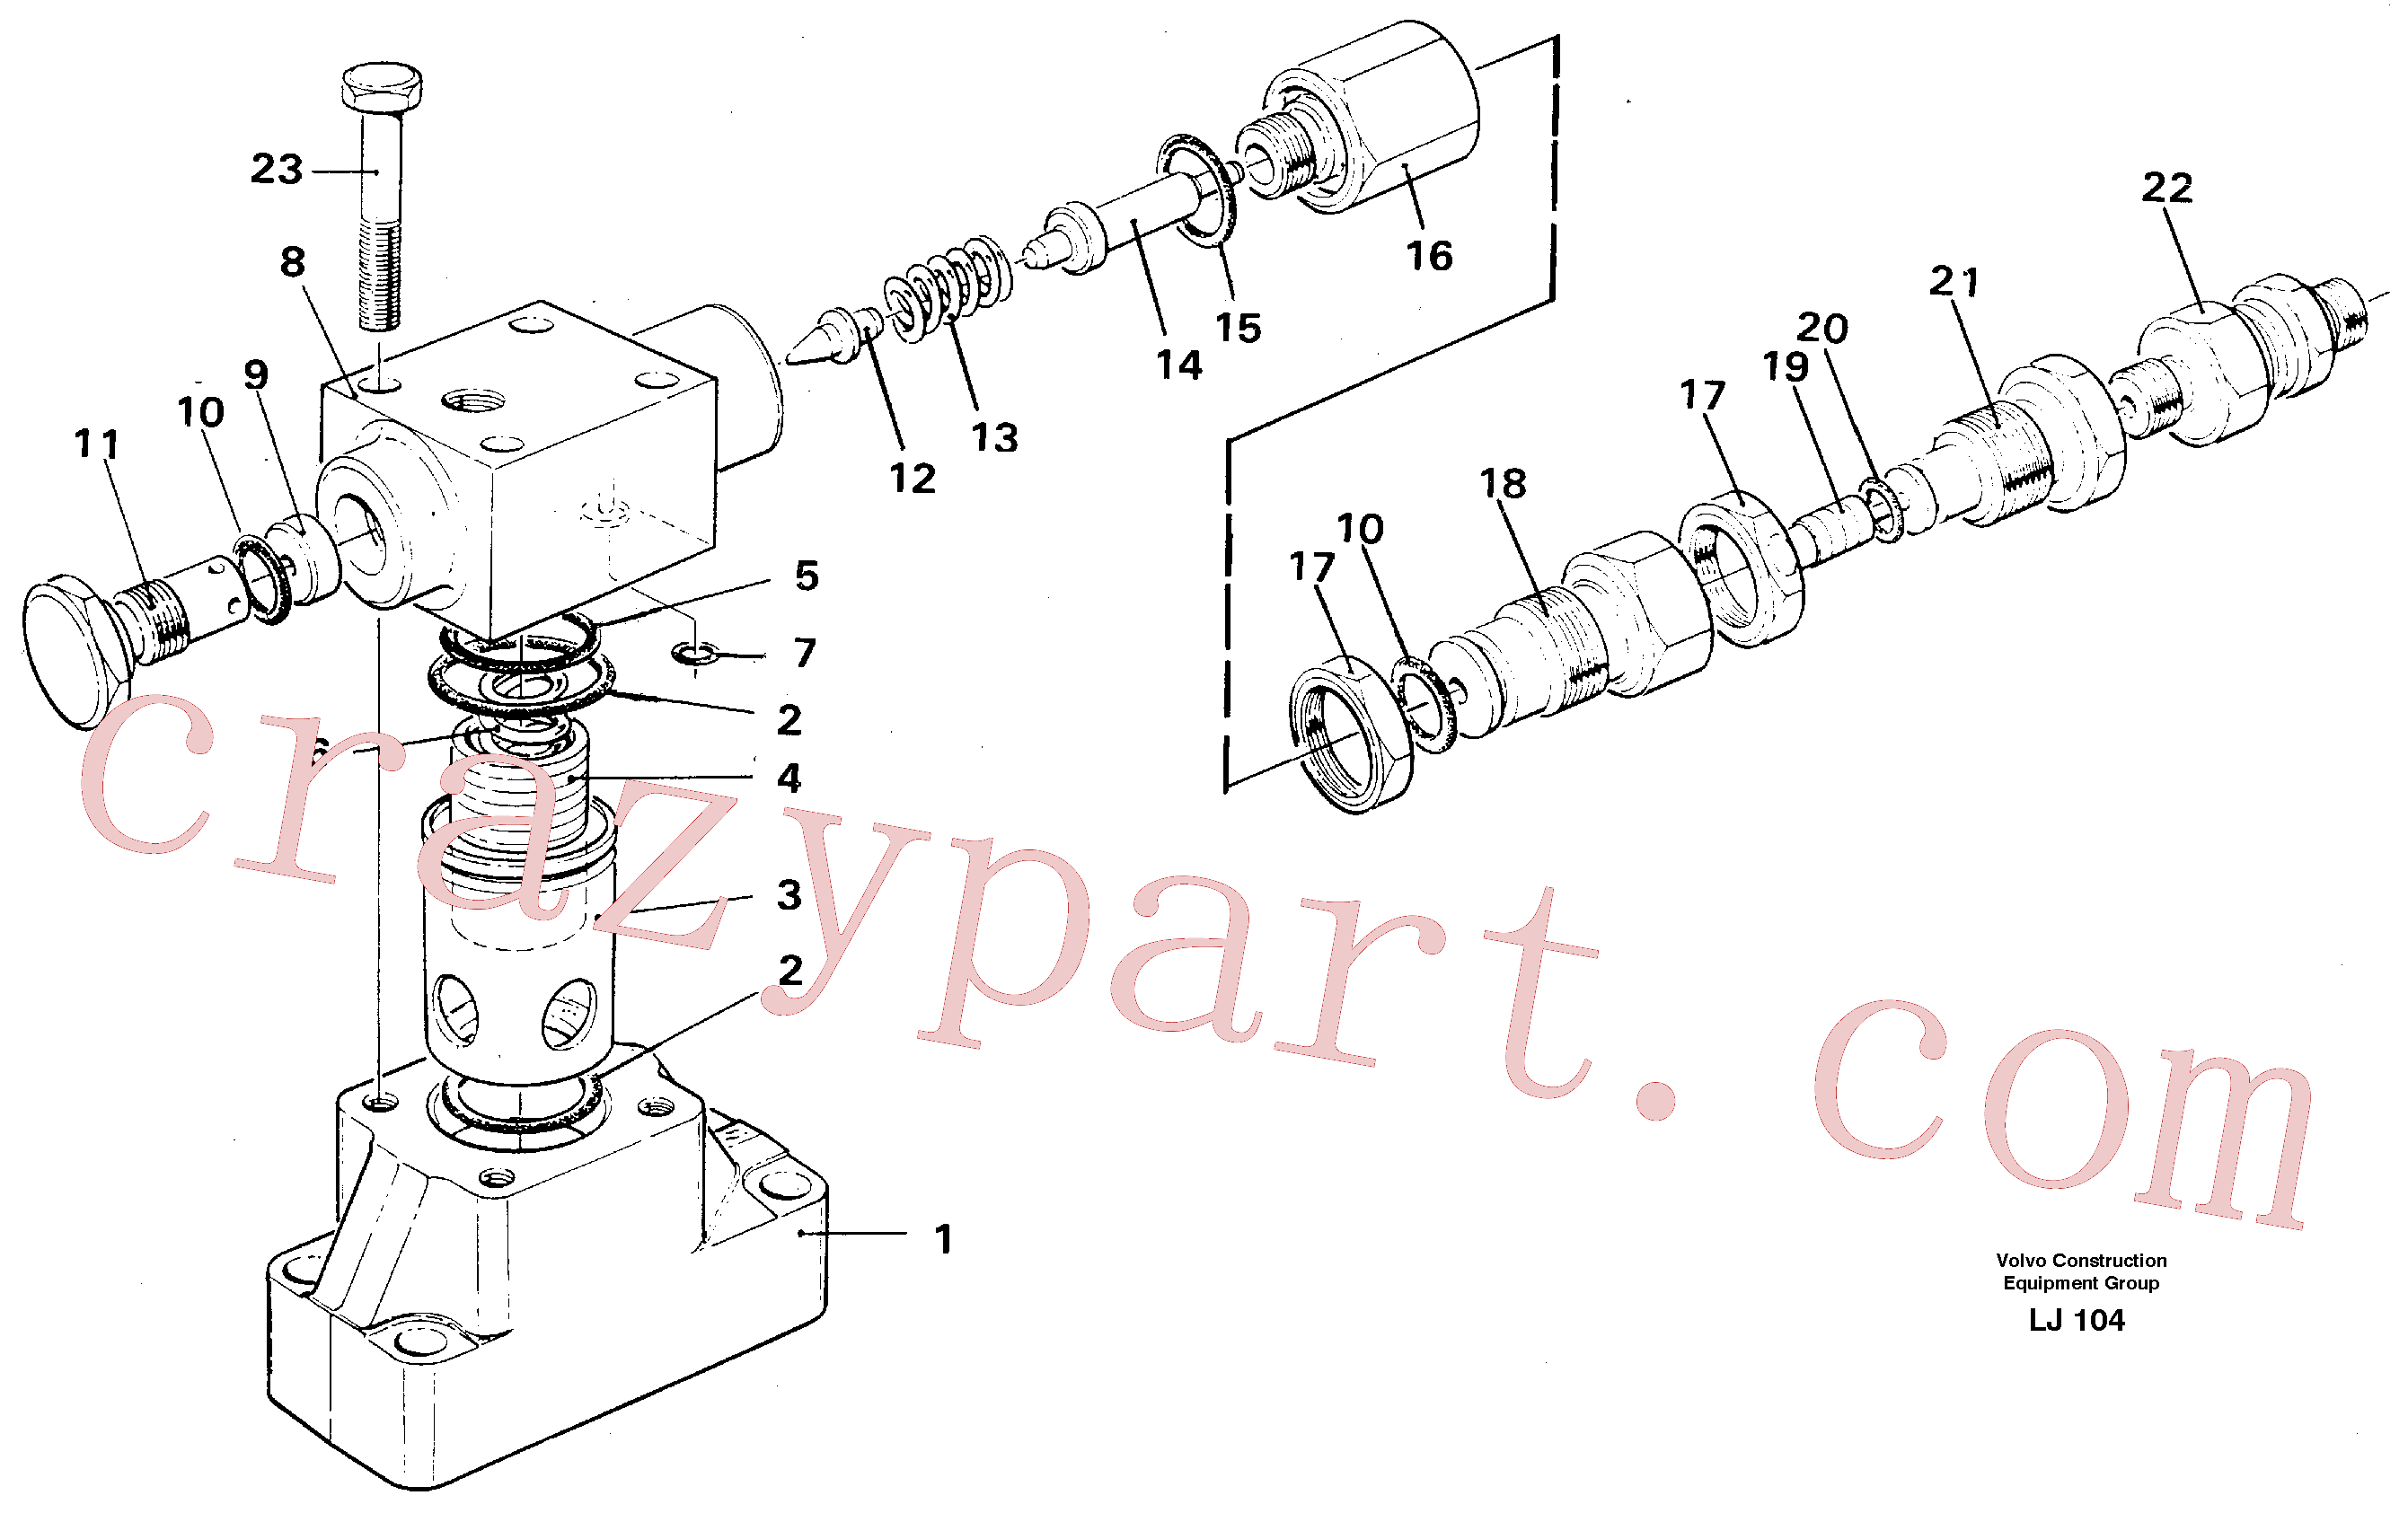 VOE14210587 for Volvo Pressure limiting valve(LJ104 assembly)